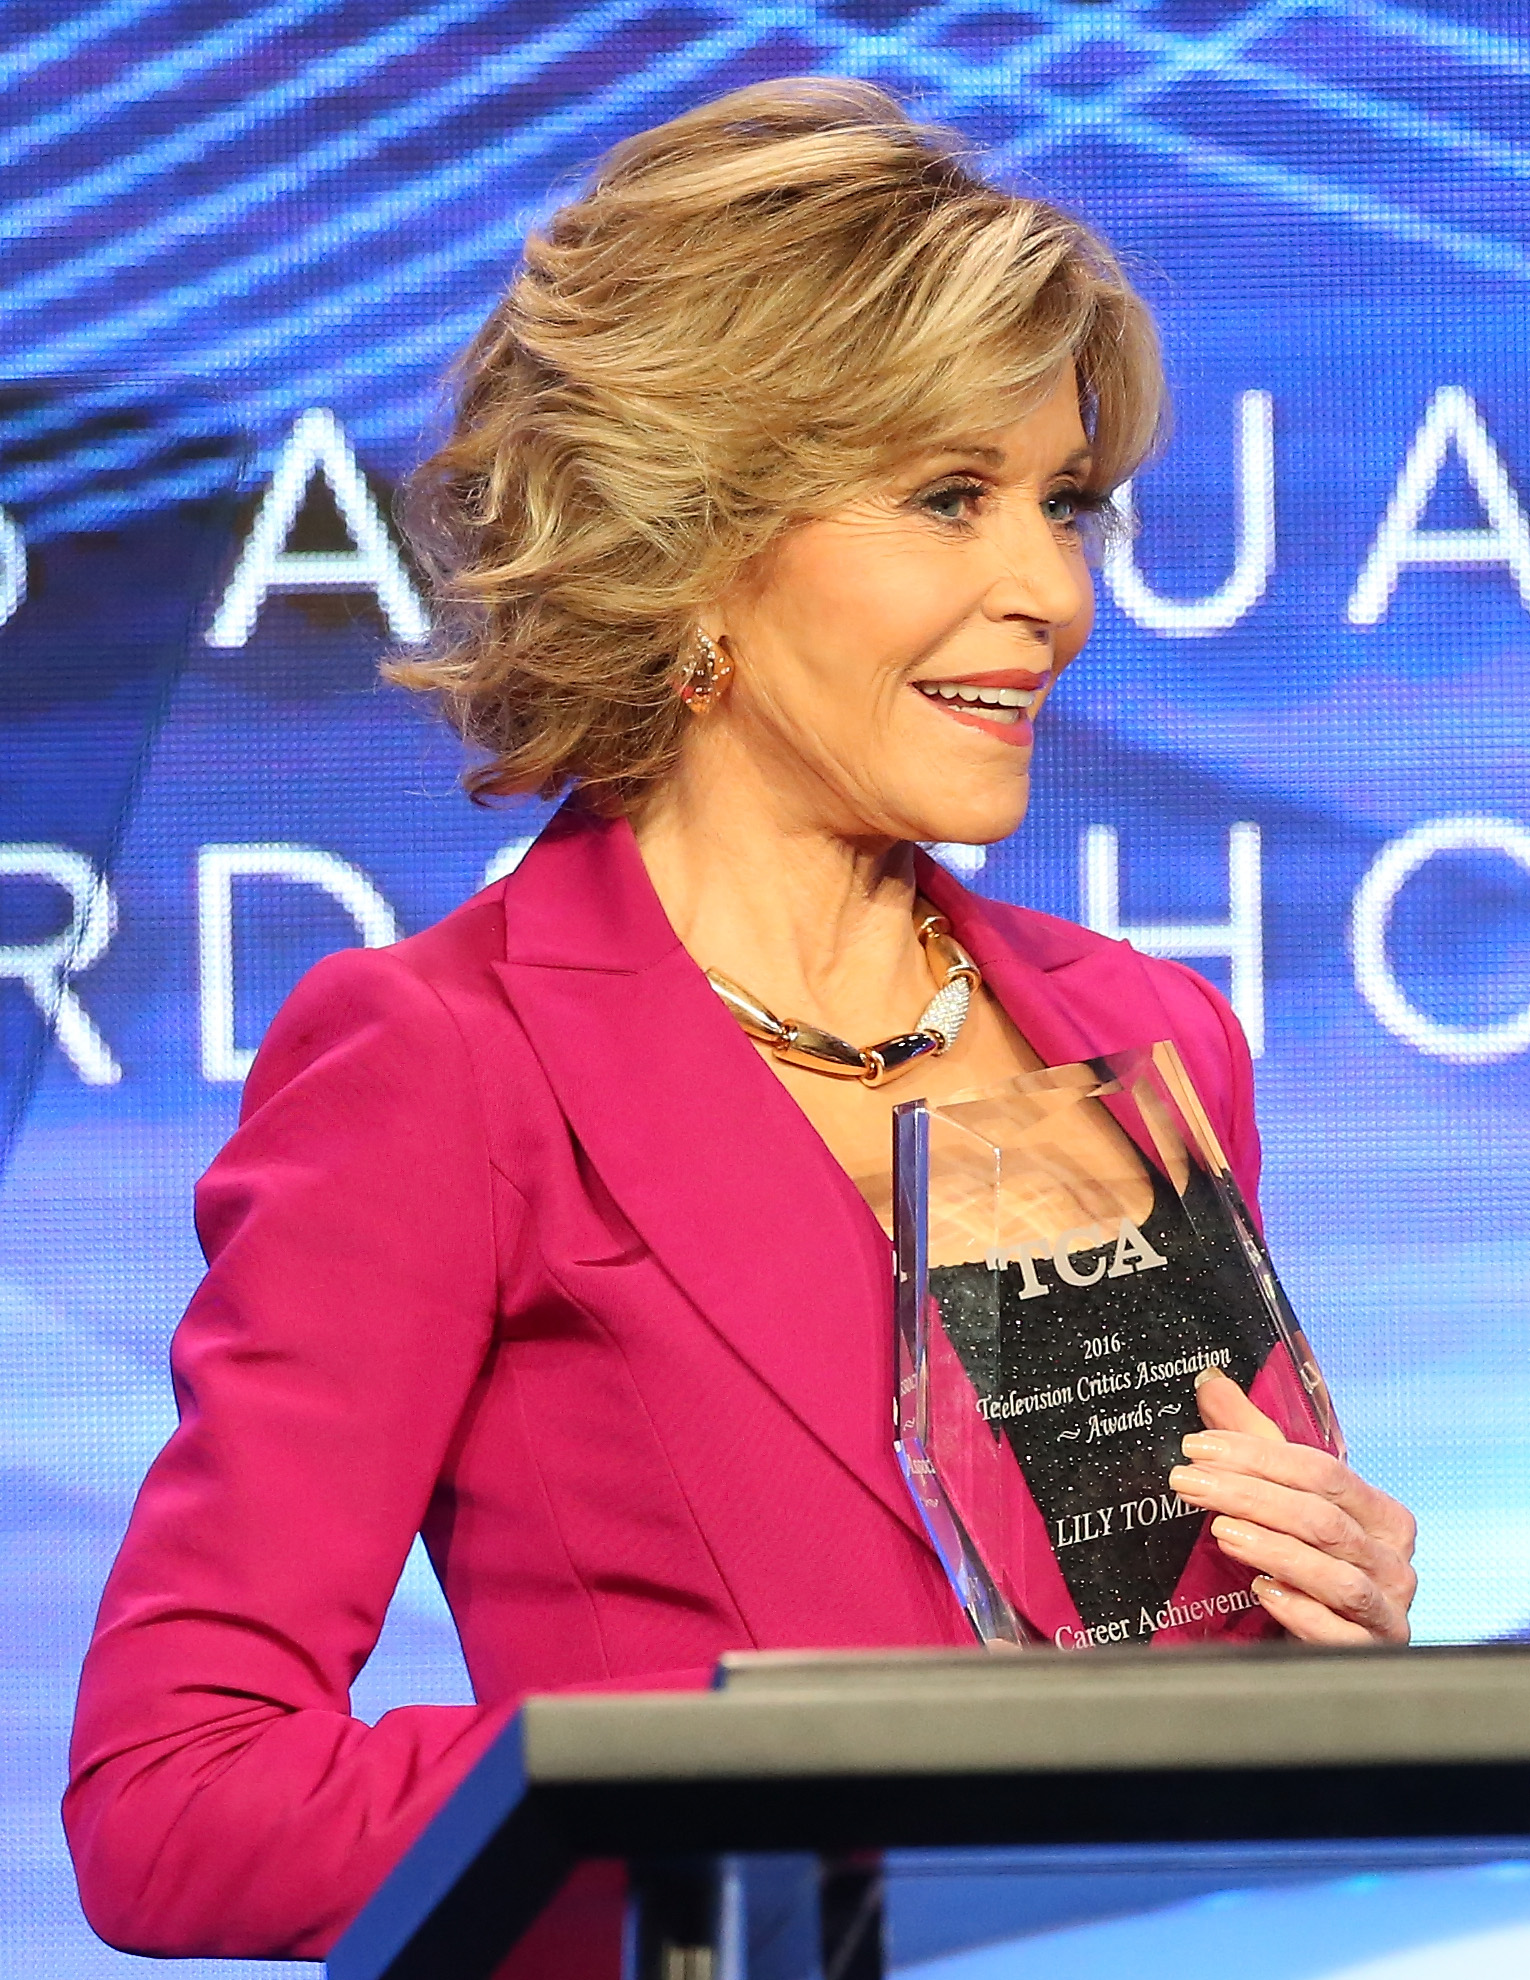 Jane Fonda (credit: Frederick M. Brown/Getty Images)